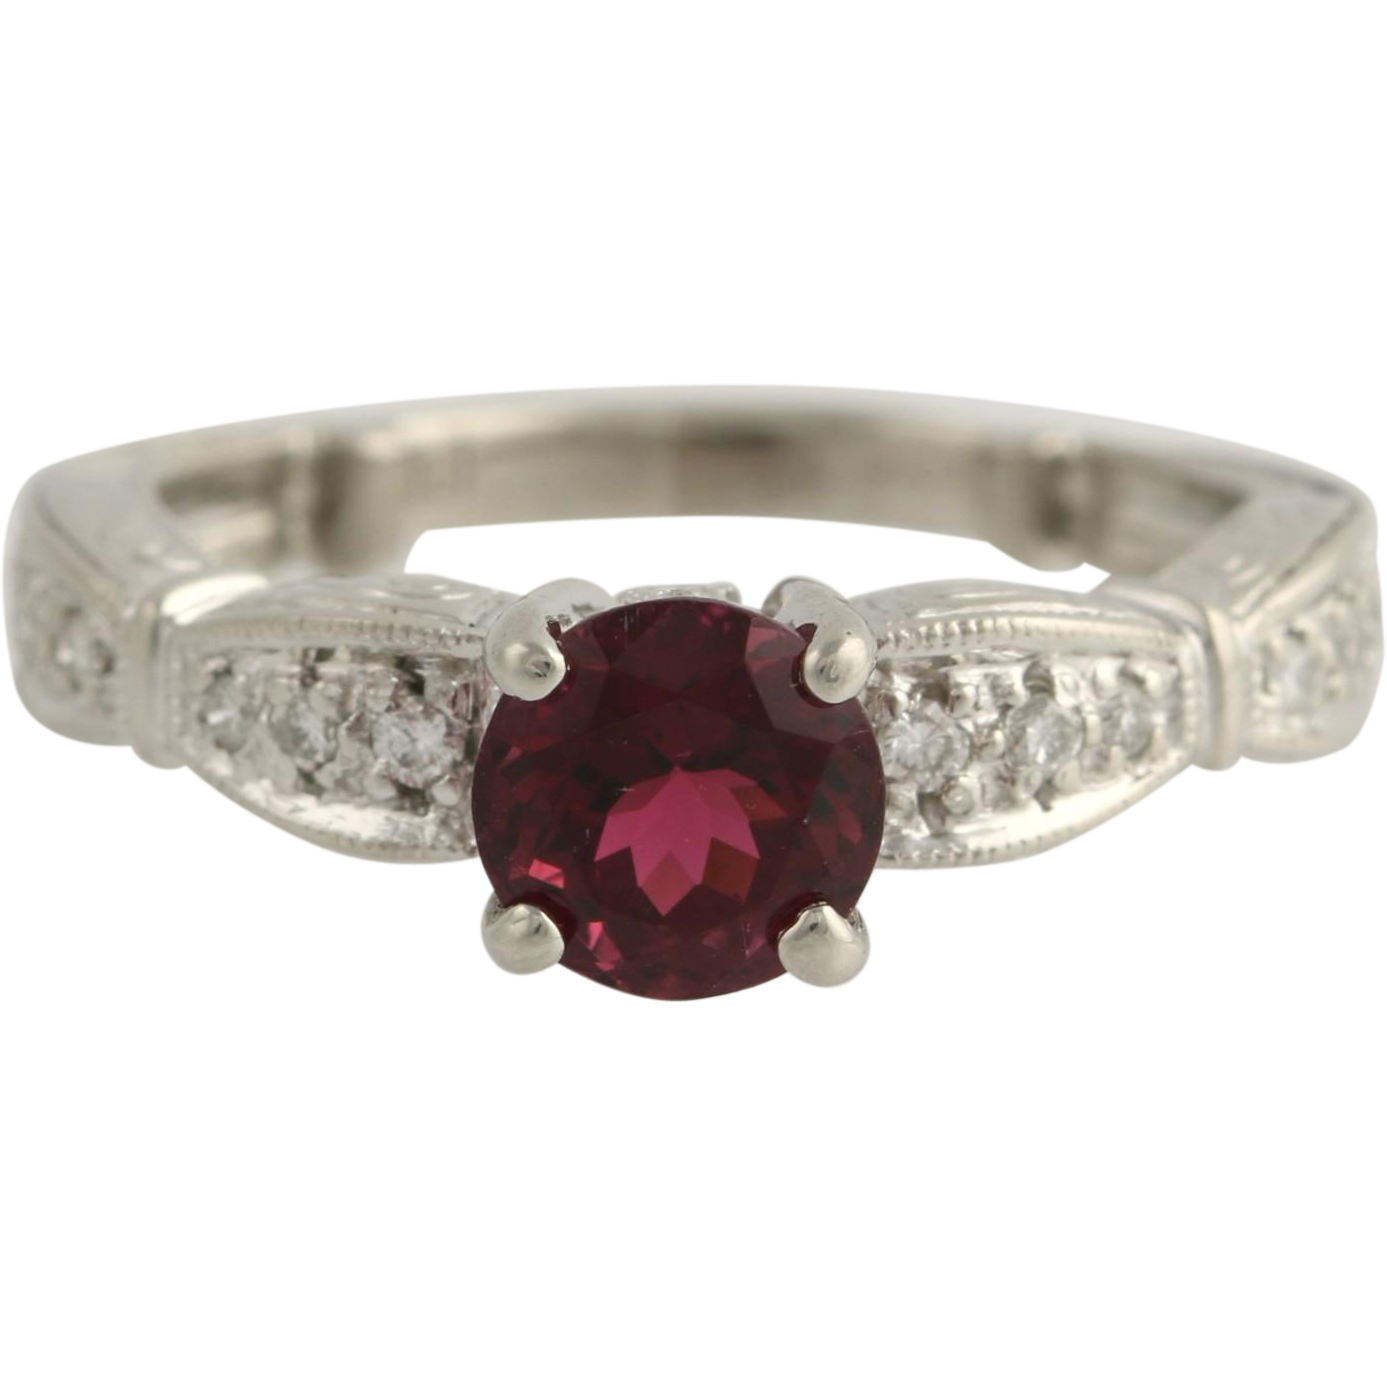 Tourmaline & Diamond Engagement Ring - Platinum 1.26ctw Rubellite Solitaire